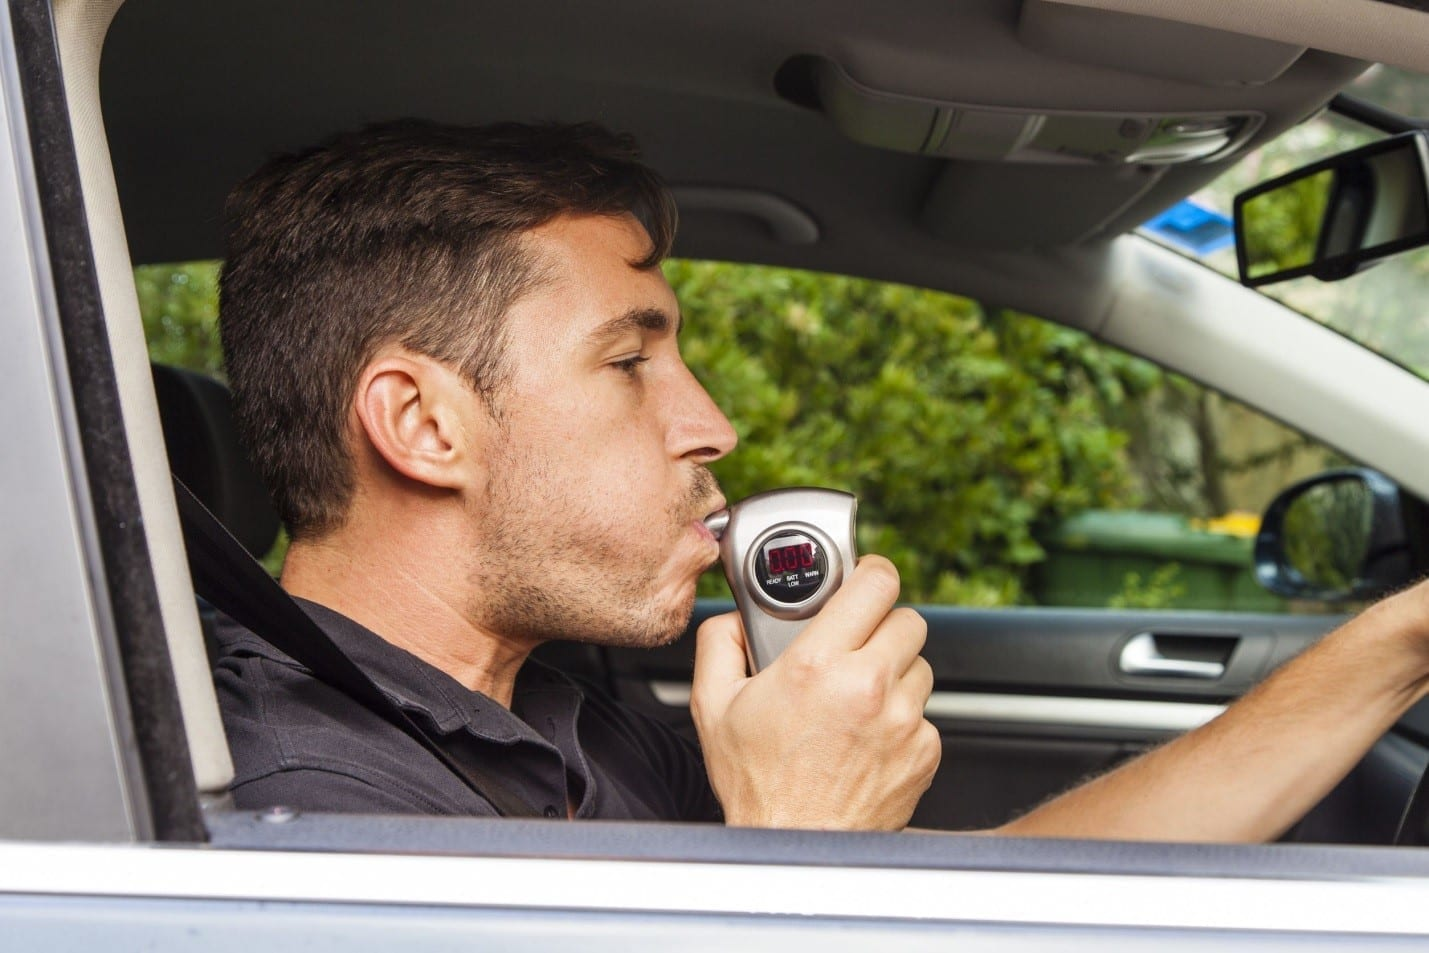 Factors That Affect the Breath Test in Colorado